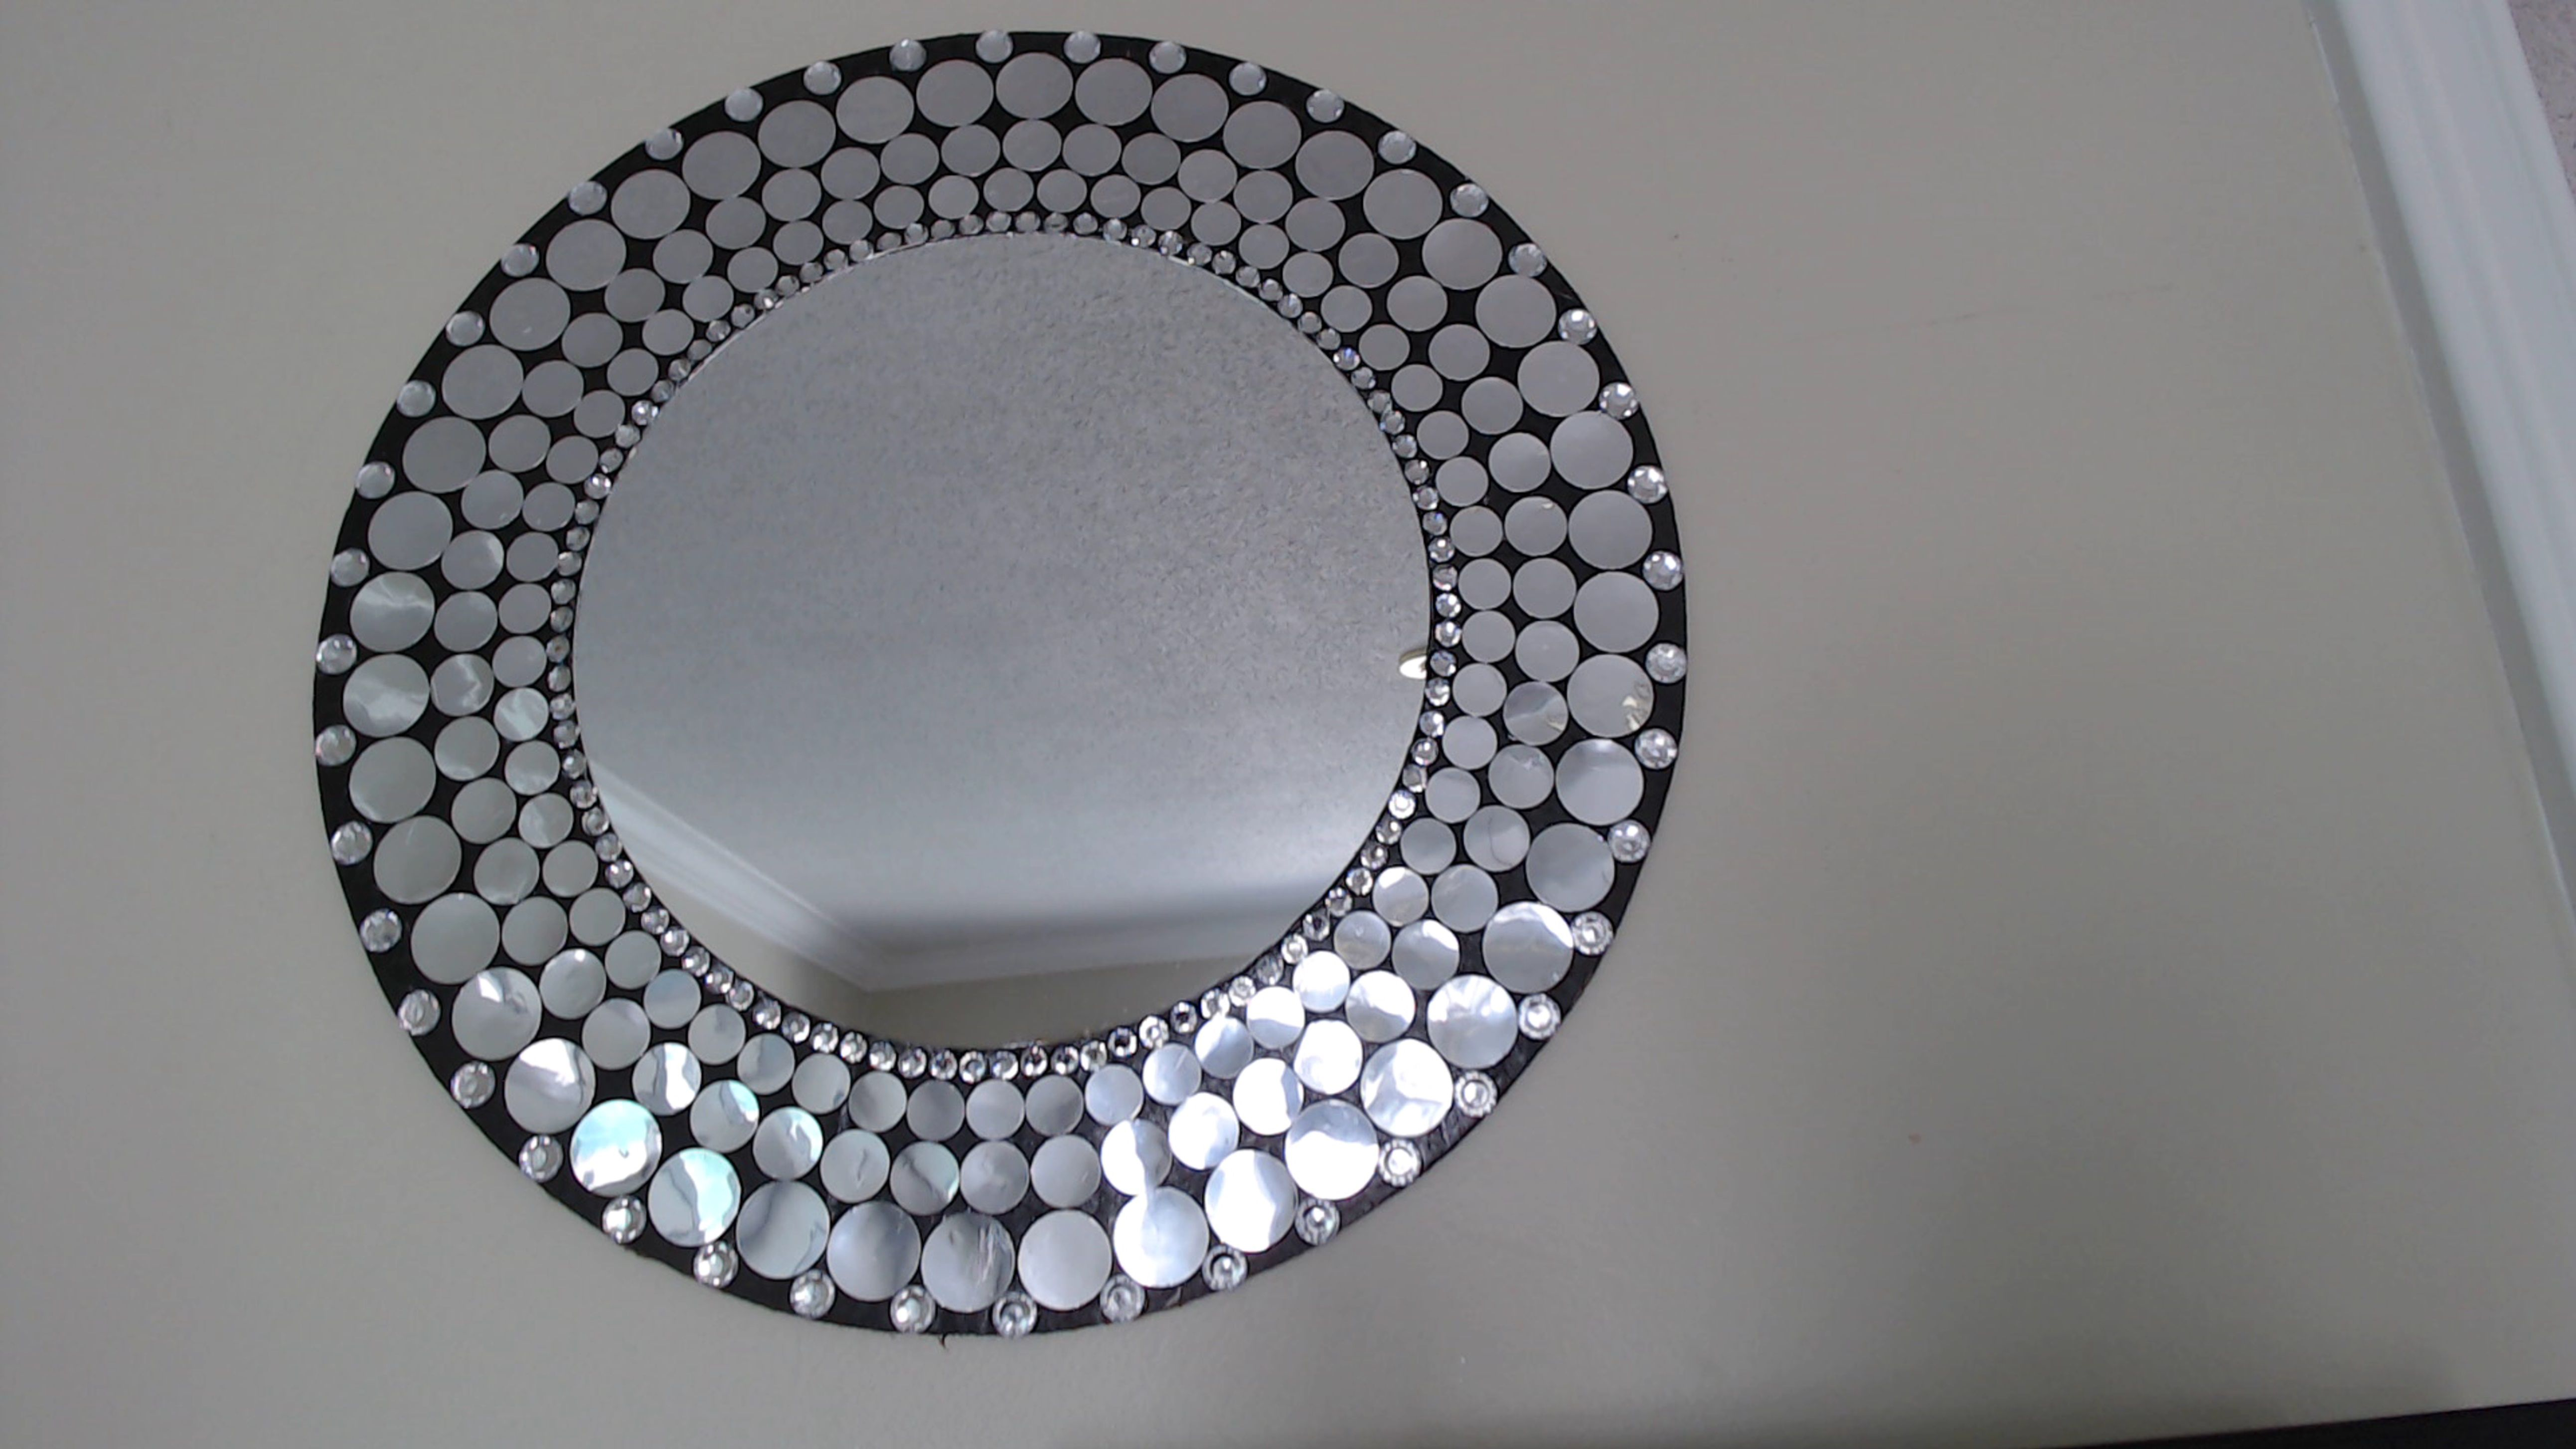 This Is A 16 Inch Mirror Wall Decor Accessorized With Small Faux Mirrors Gems On A Foam Board Mirror Wall Decor Mirror Mirror Decor